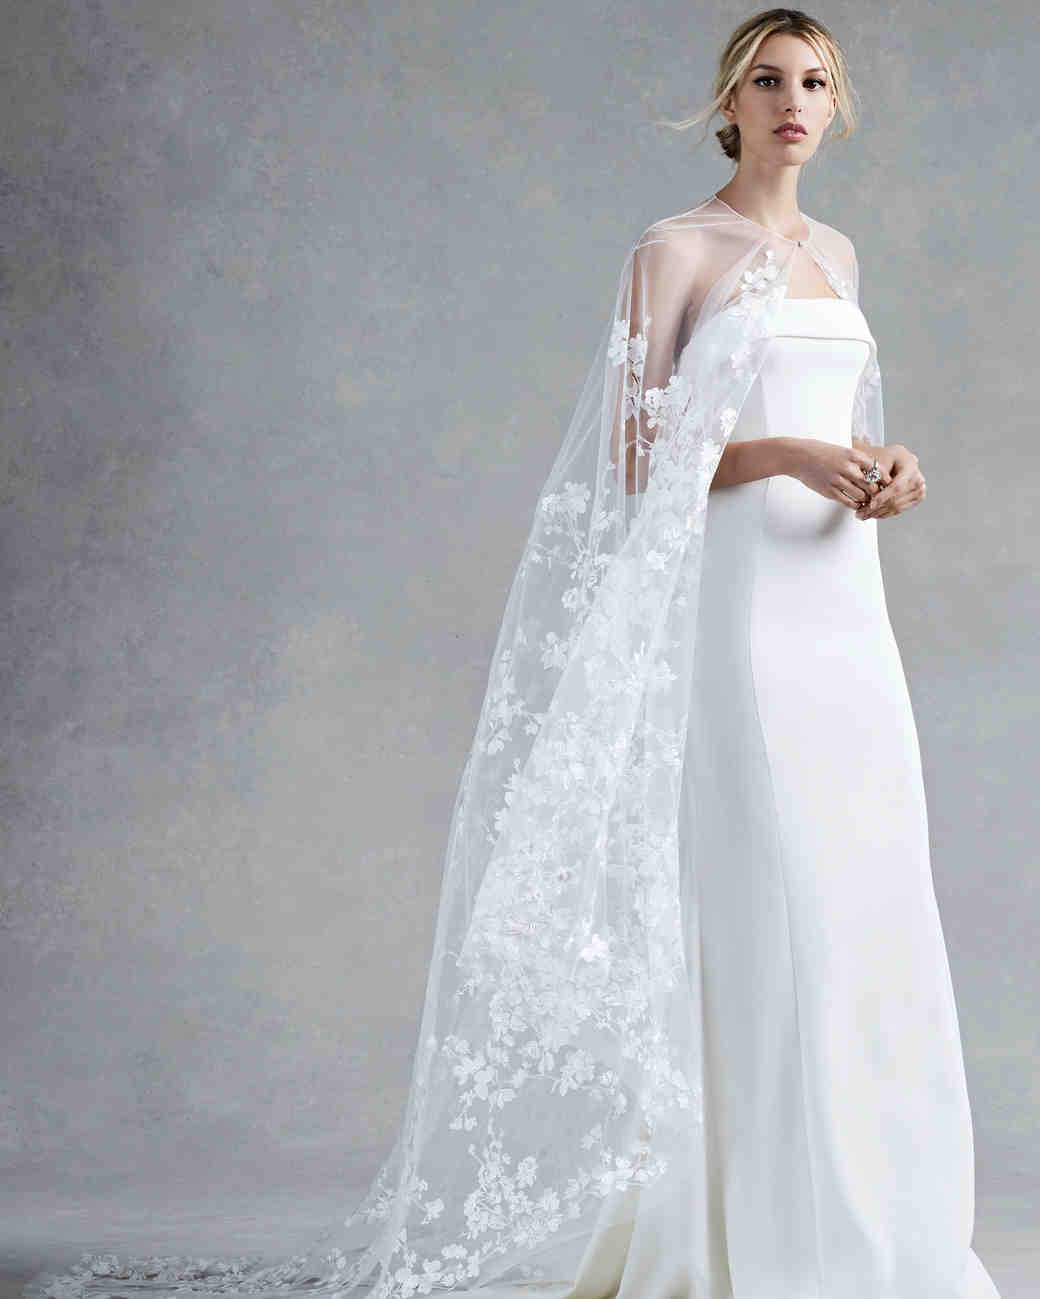 Oscar de la Renta Fall 2017 Wedding Dress Collection Martha